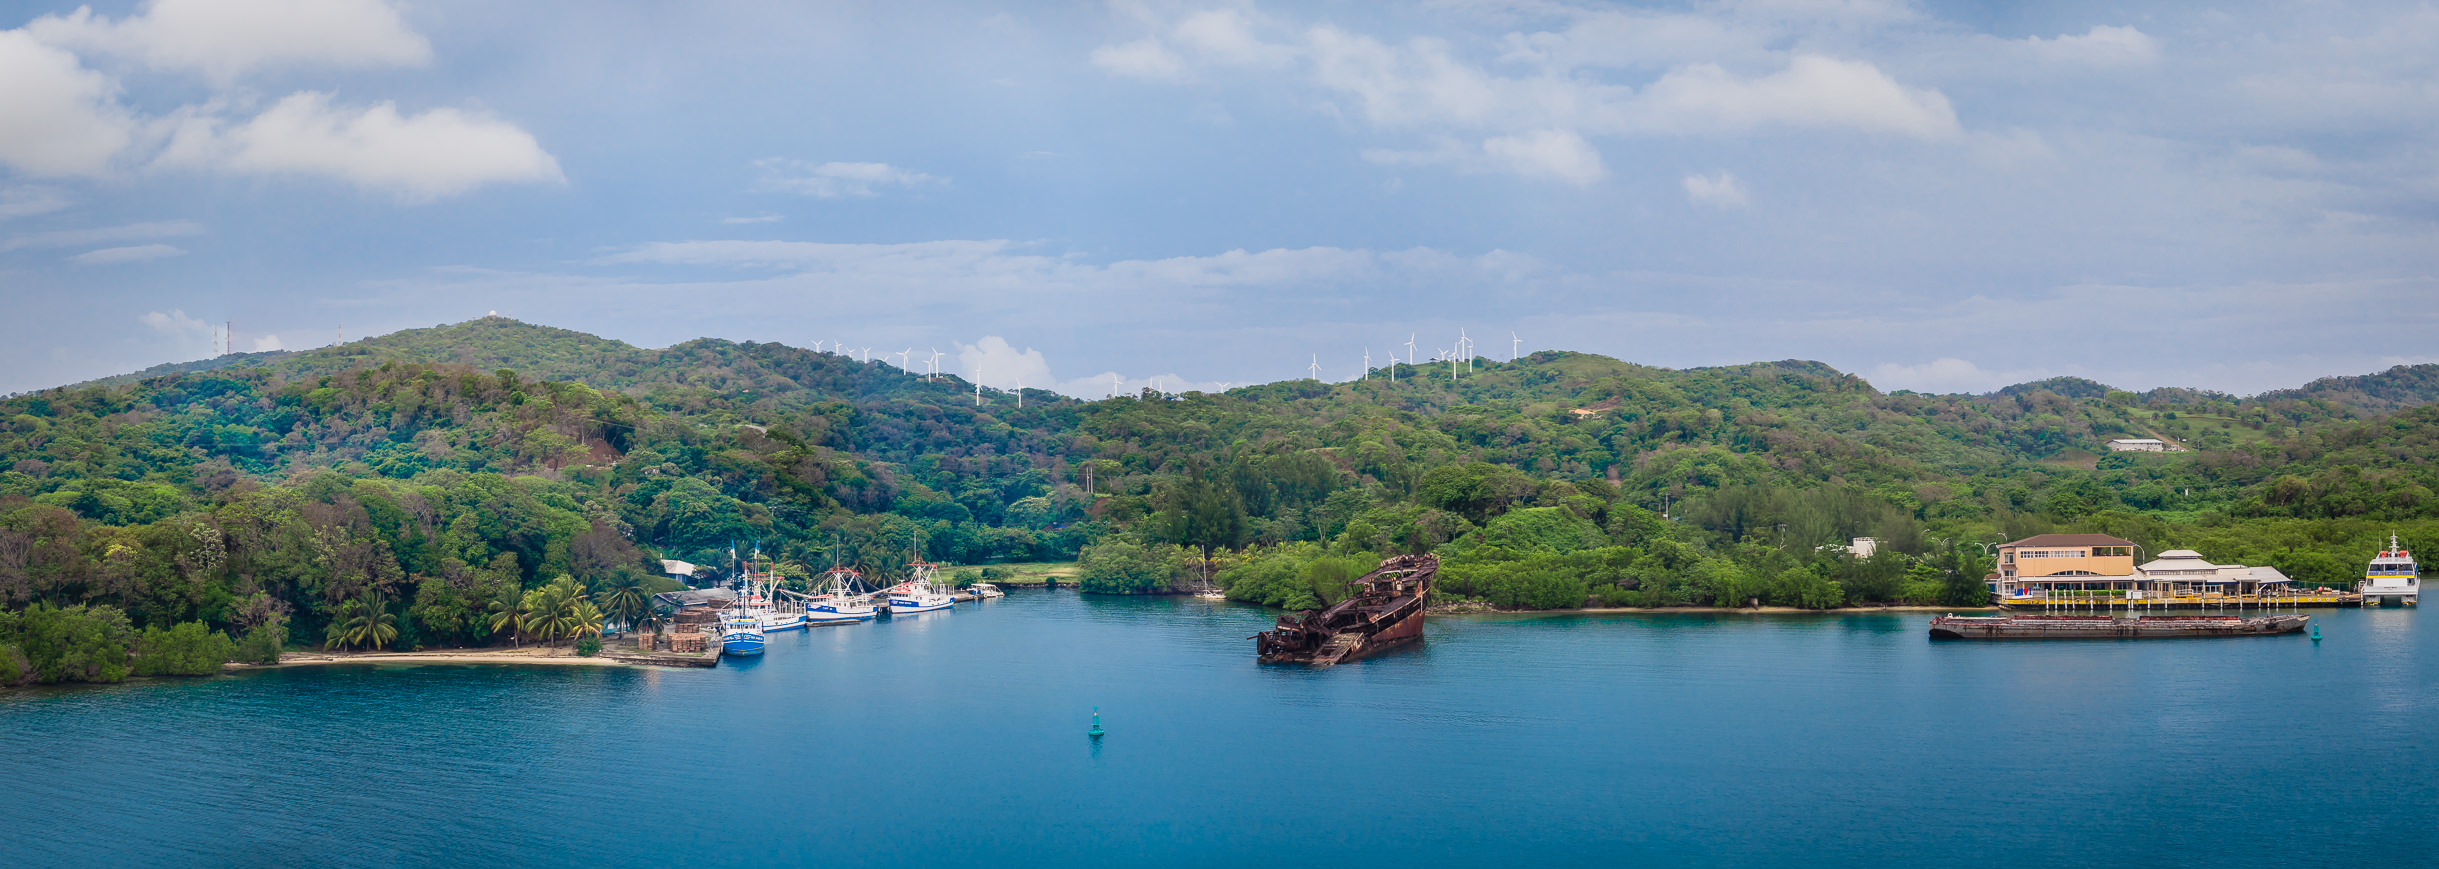 A partially-sunken ship rises from the waters of Roatan, Honduras' harbor.